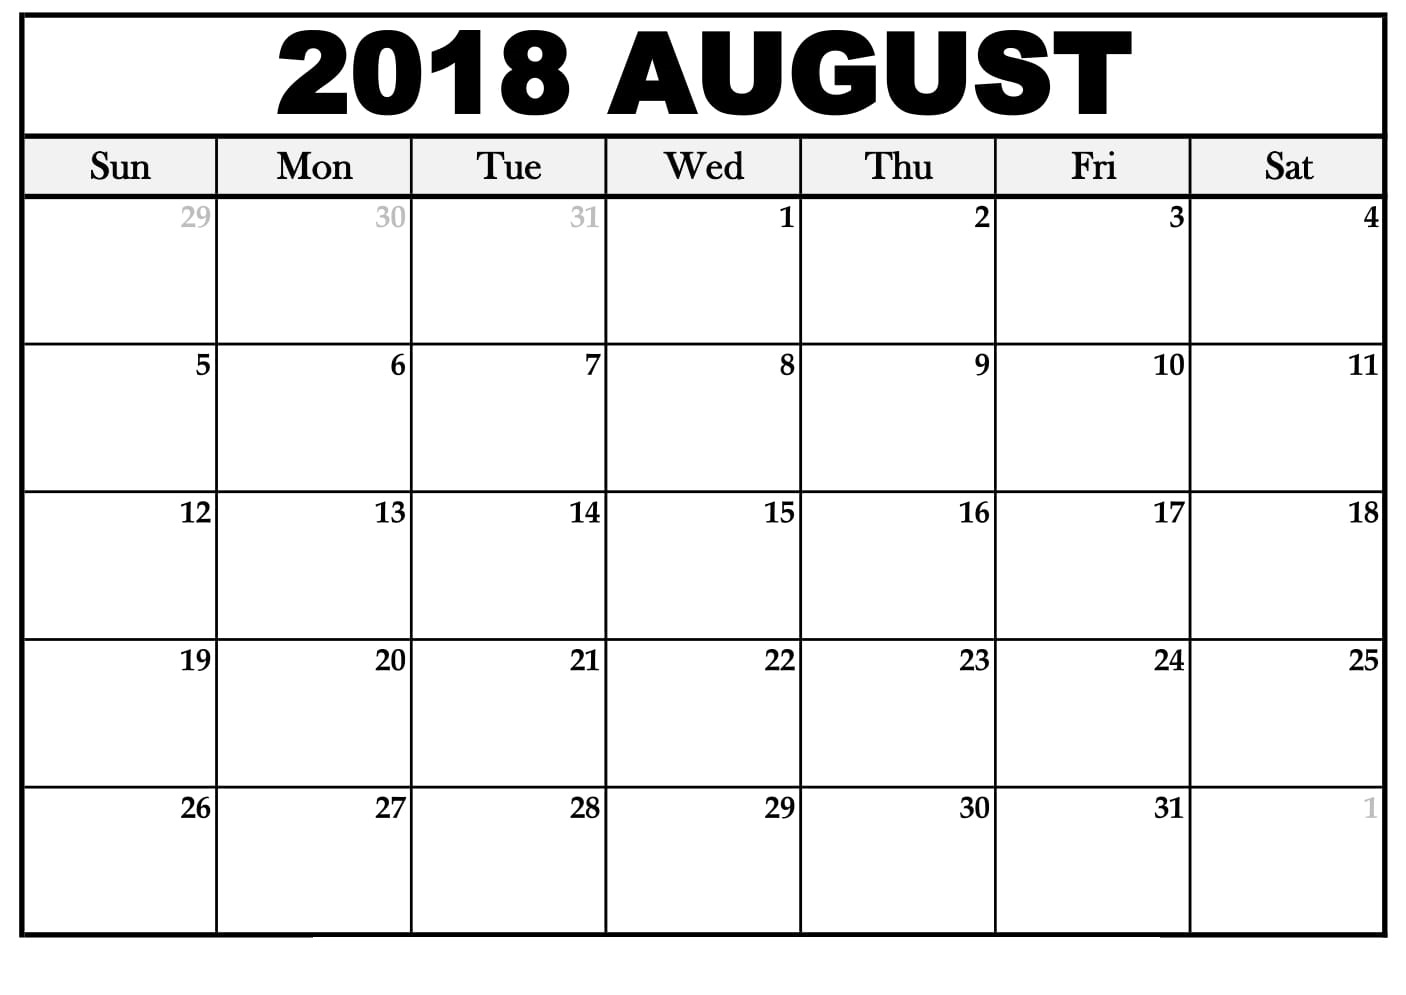 Great monthly calendar template printable images gallery free printable monthly calendar for aug 2018 calendar template printable maxwellsz